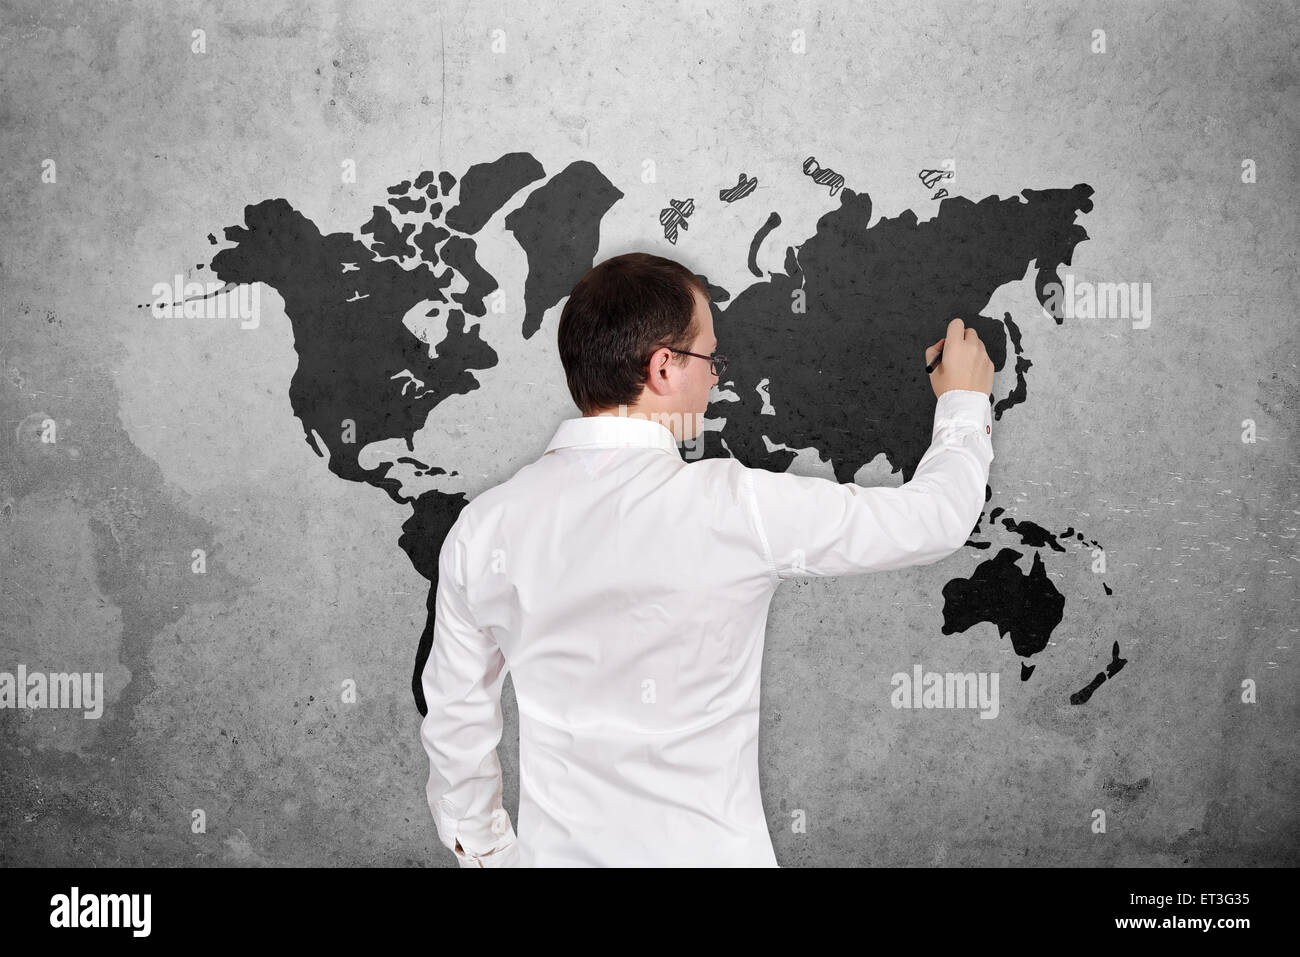 World map on concrete stock photos world map on concrete stock young businessman drawing world map on concrete wall stock image gumiabroncs Images